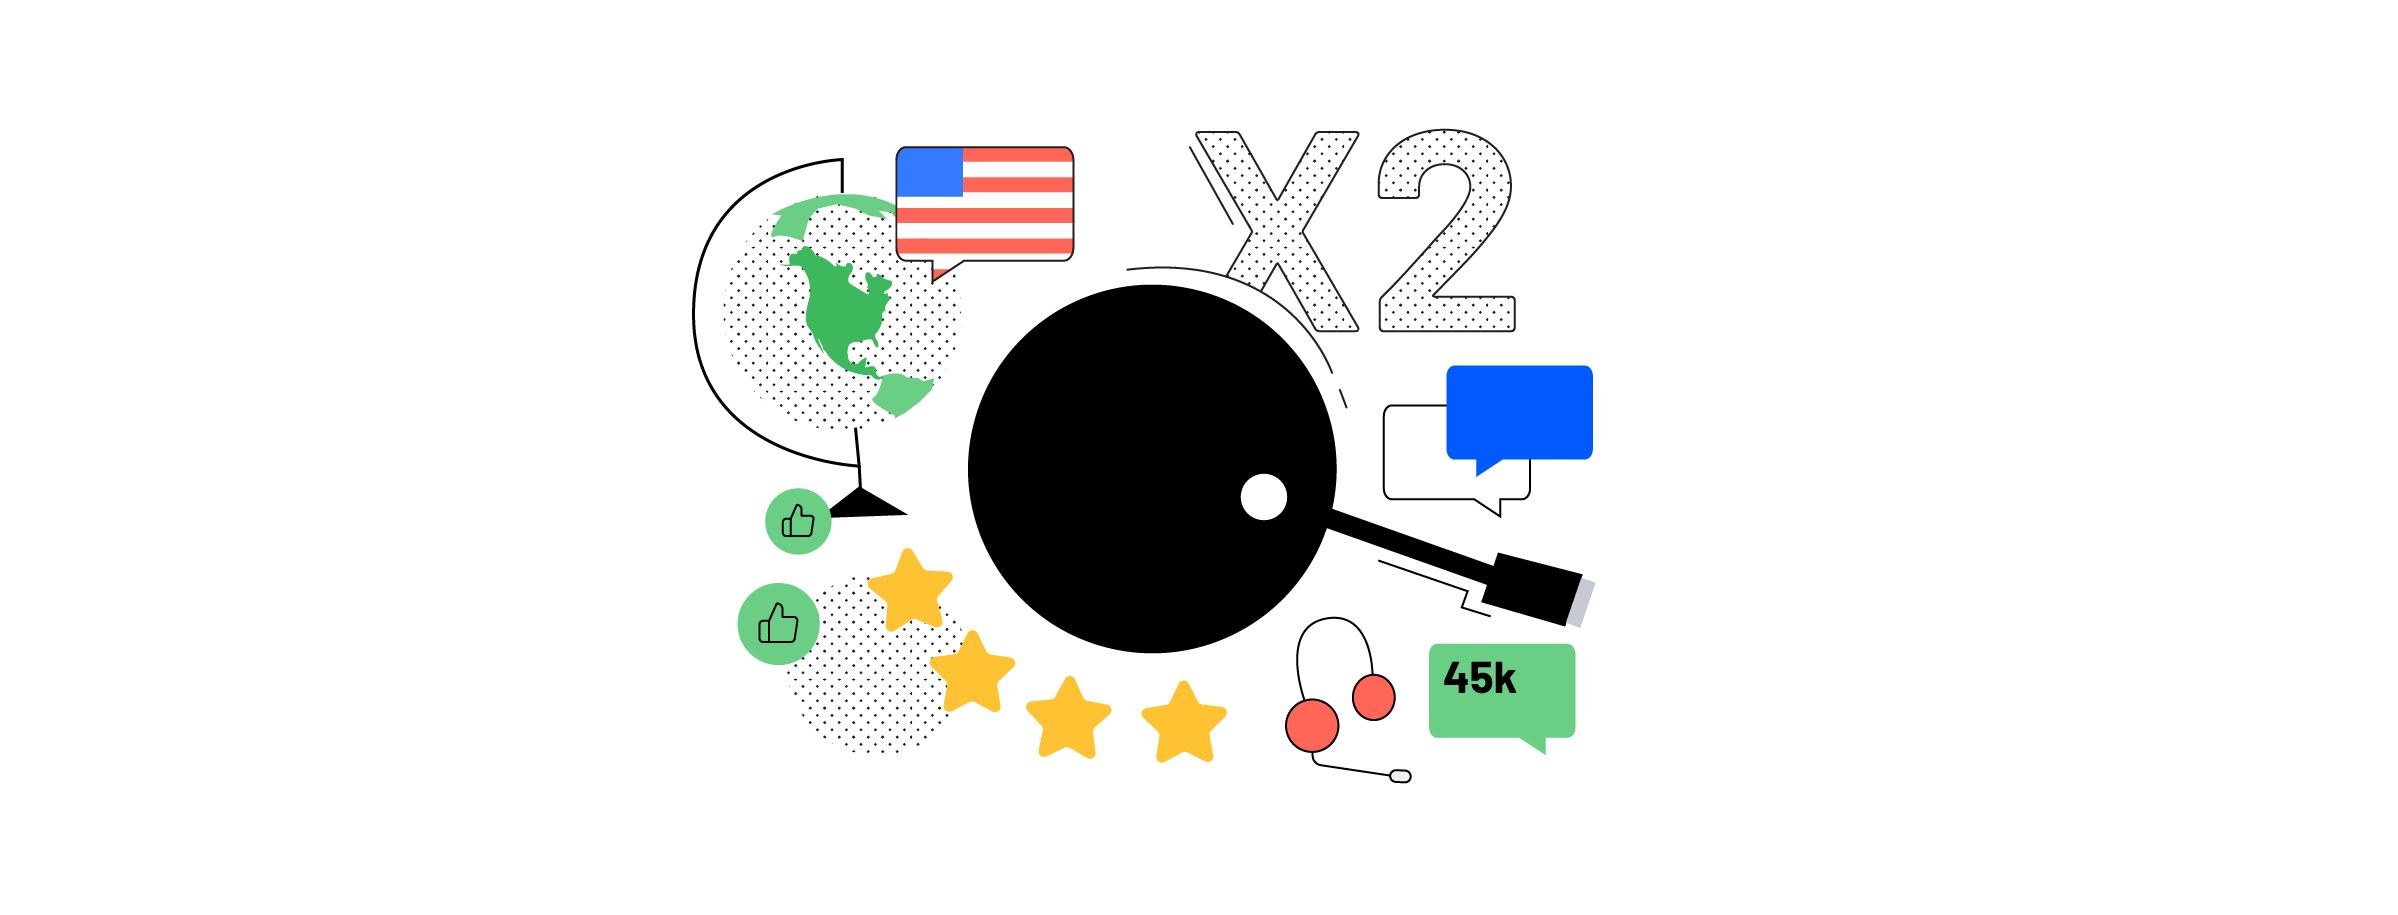 An Airtame device among the 2018 usage data from around the world together with an American flag and five stars